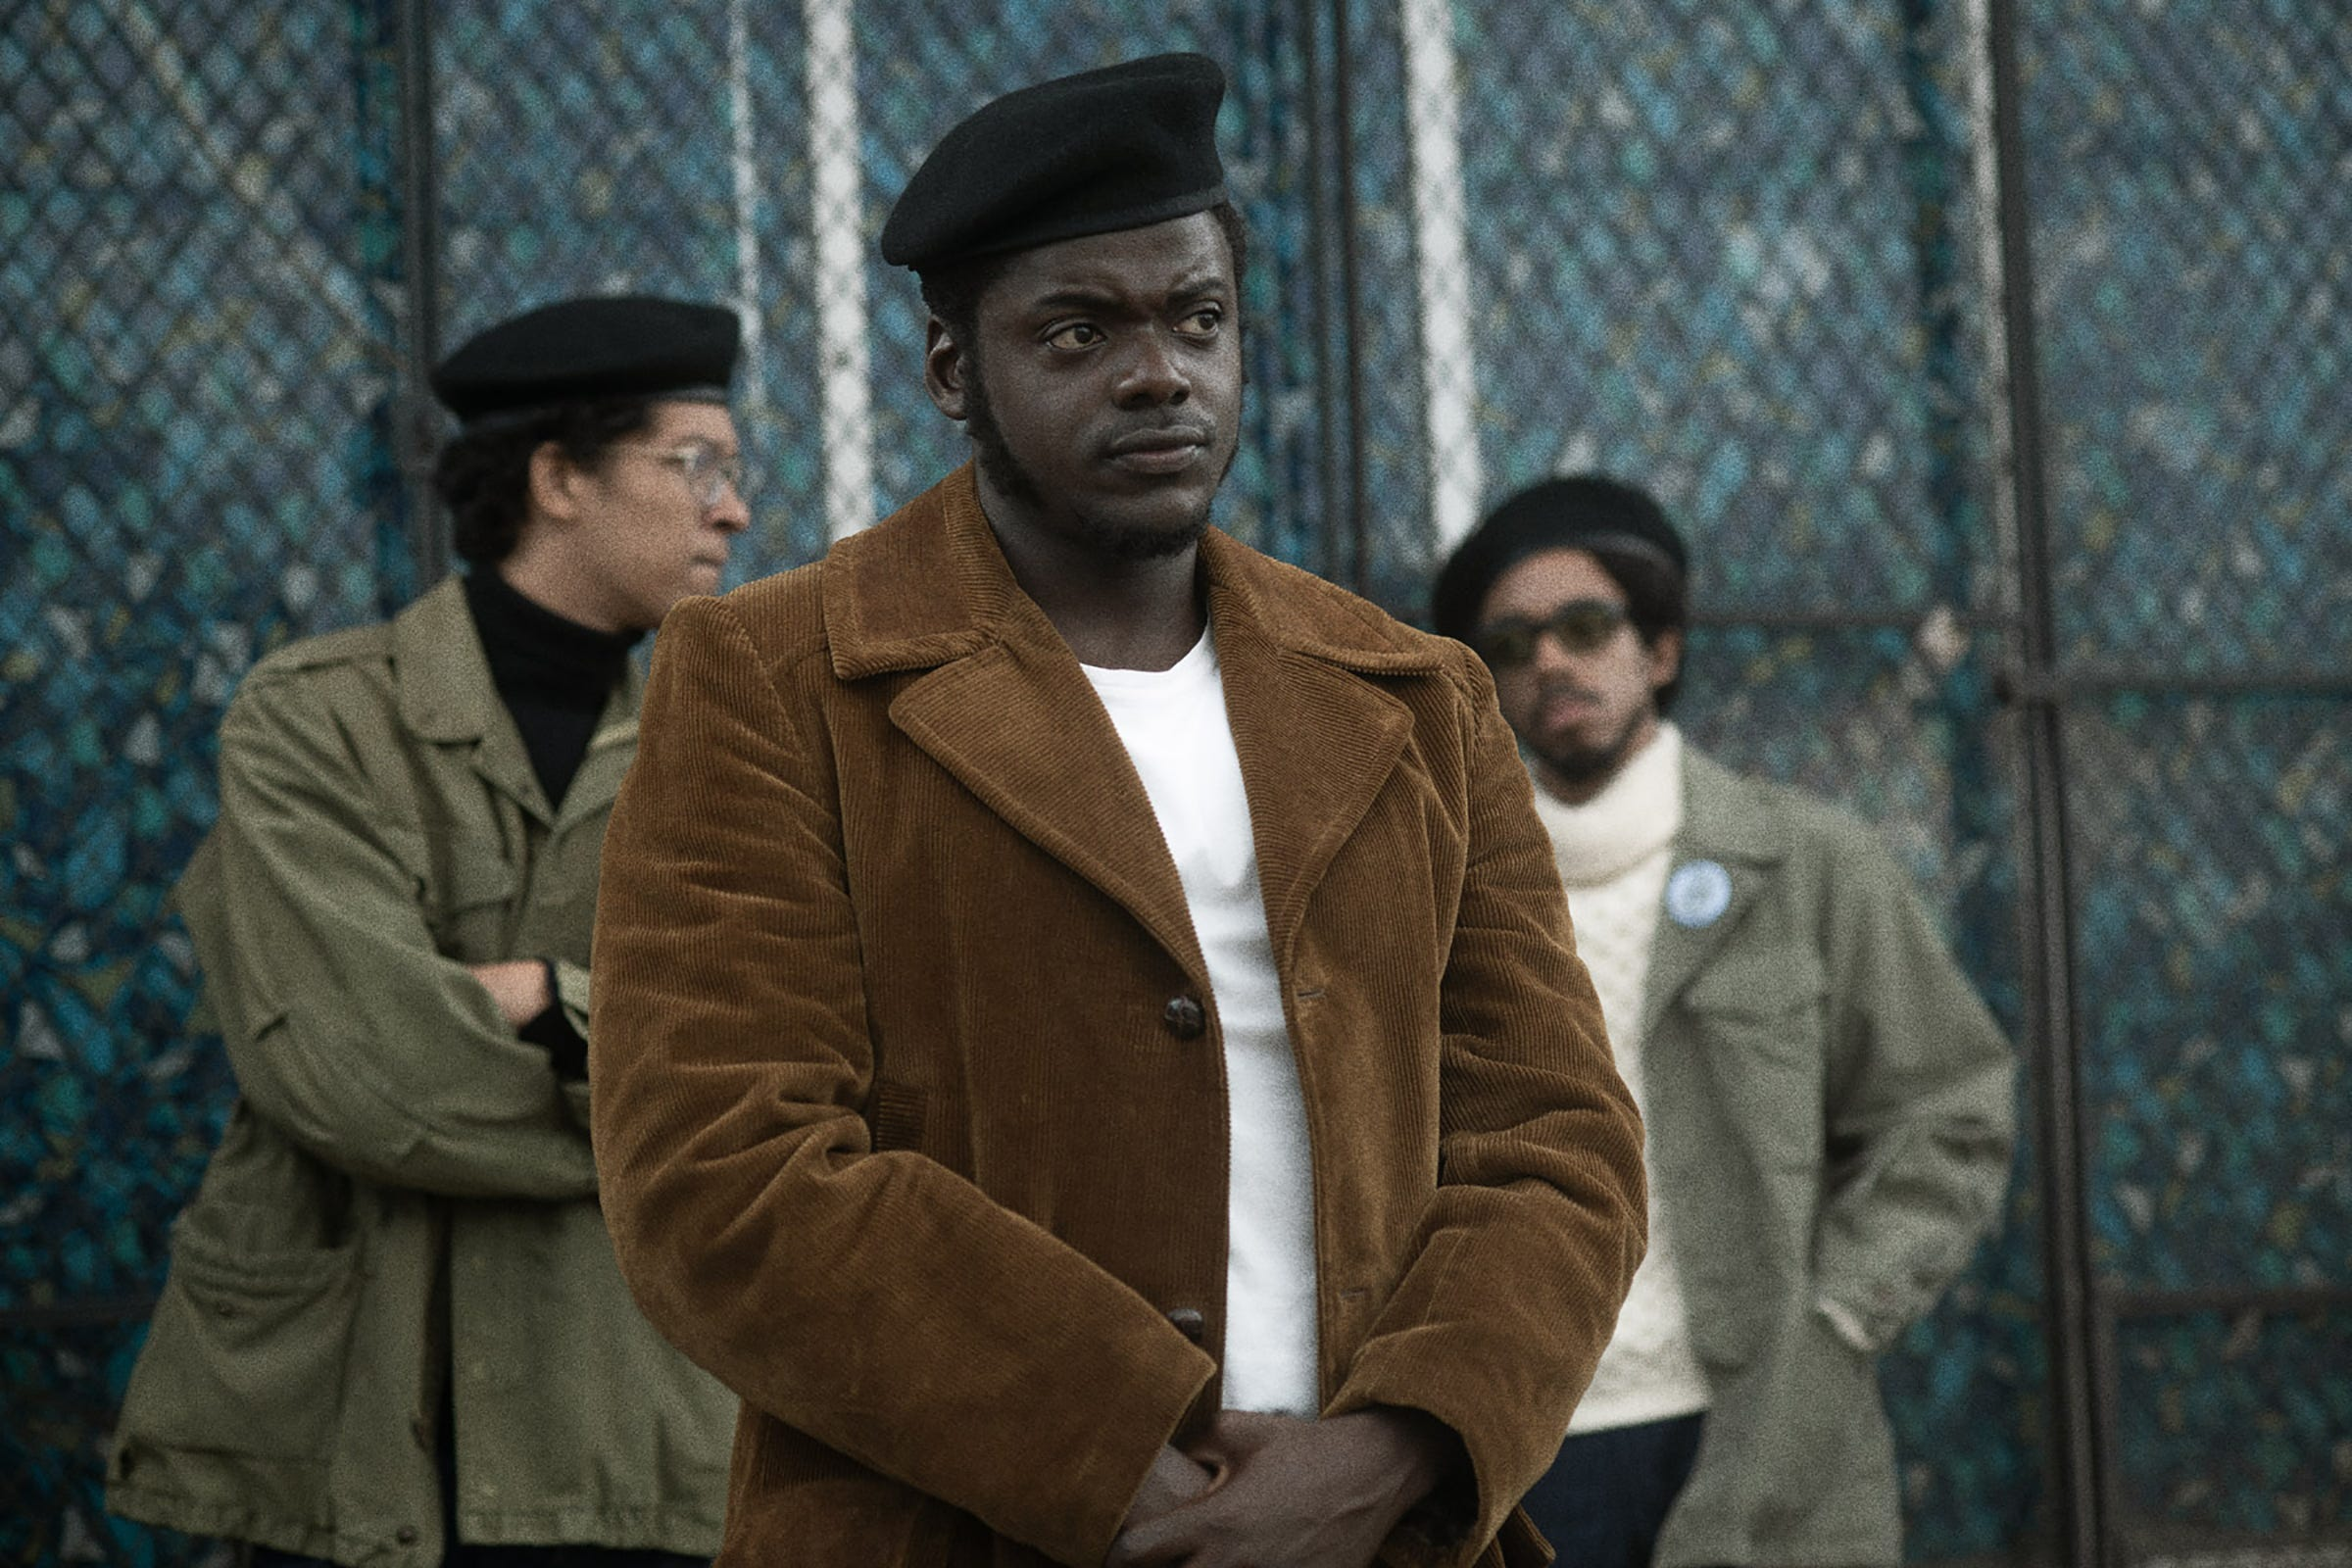 judas and the black messiah, film review, Lucas Mirabella